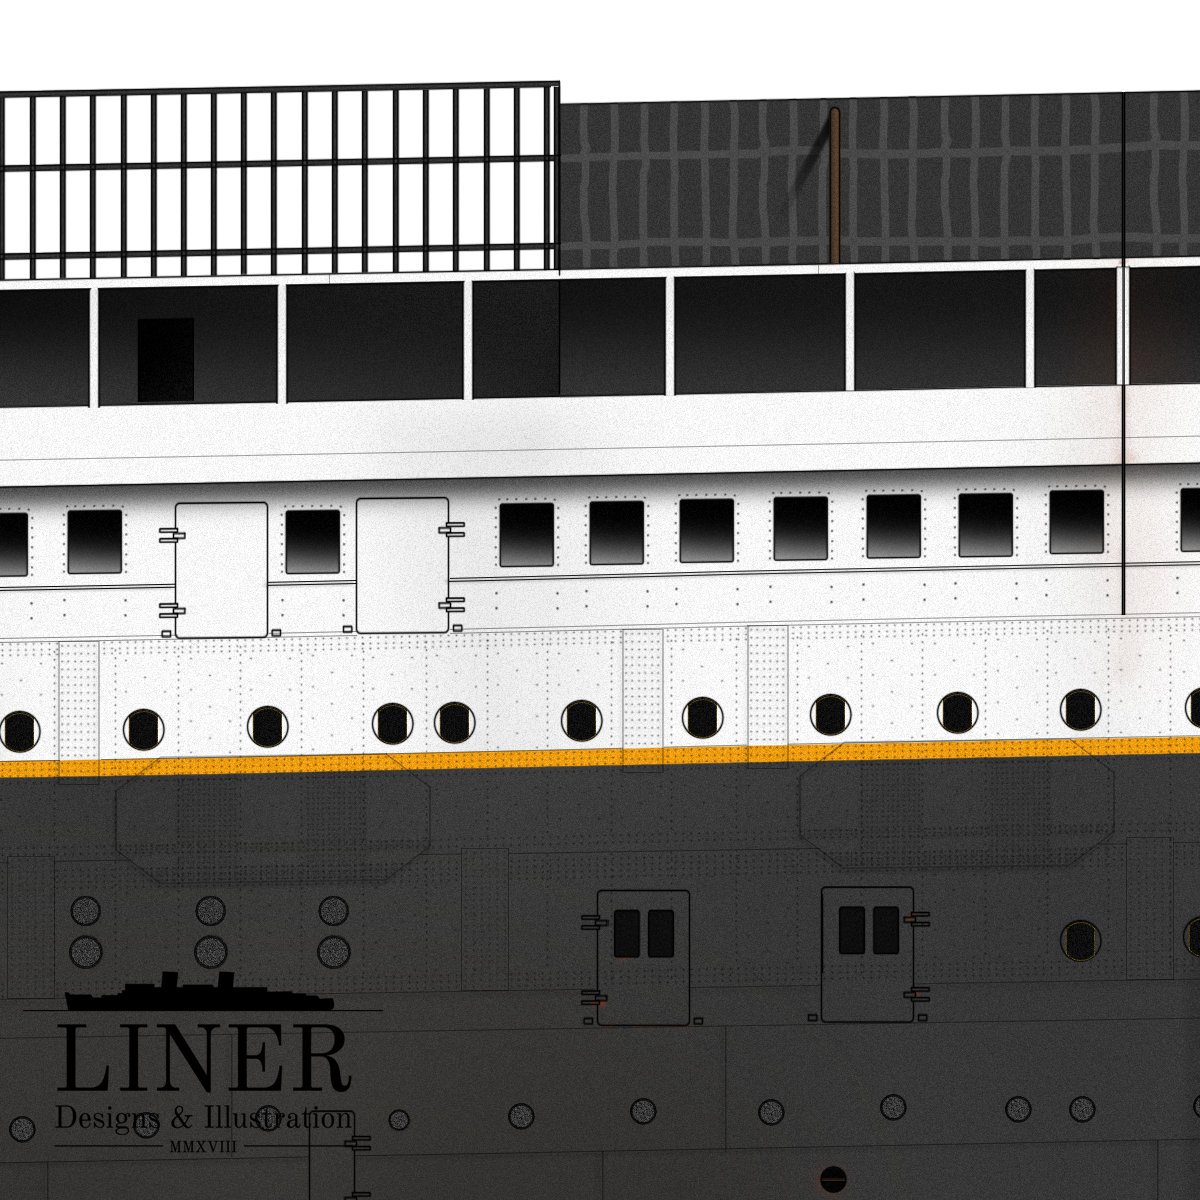 Titanic was launched with a window and sidelight arrangement virtually unchanged from that of her older sister Olympic. During fit-out many changes would eventually be made to Titanic.